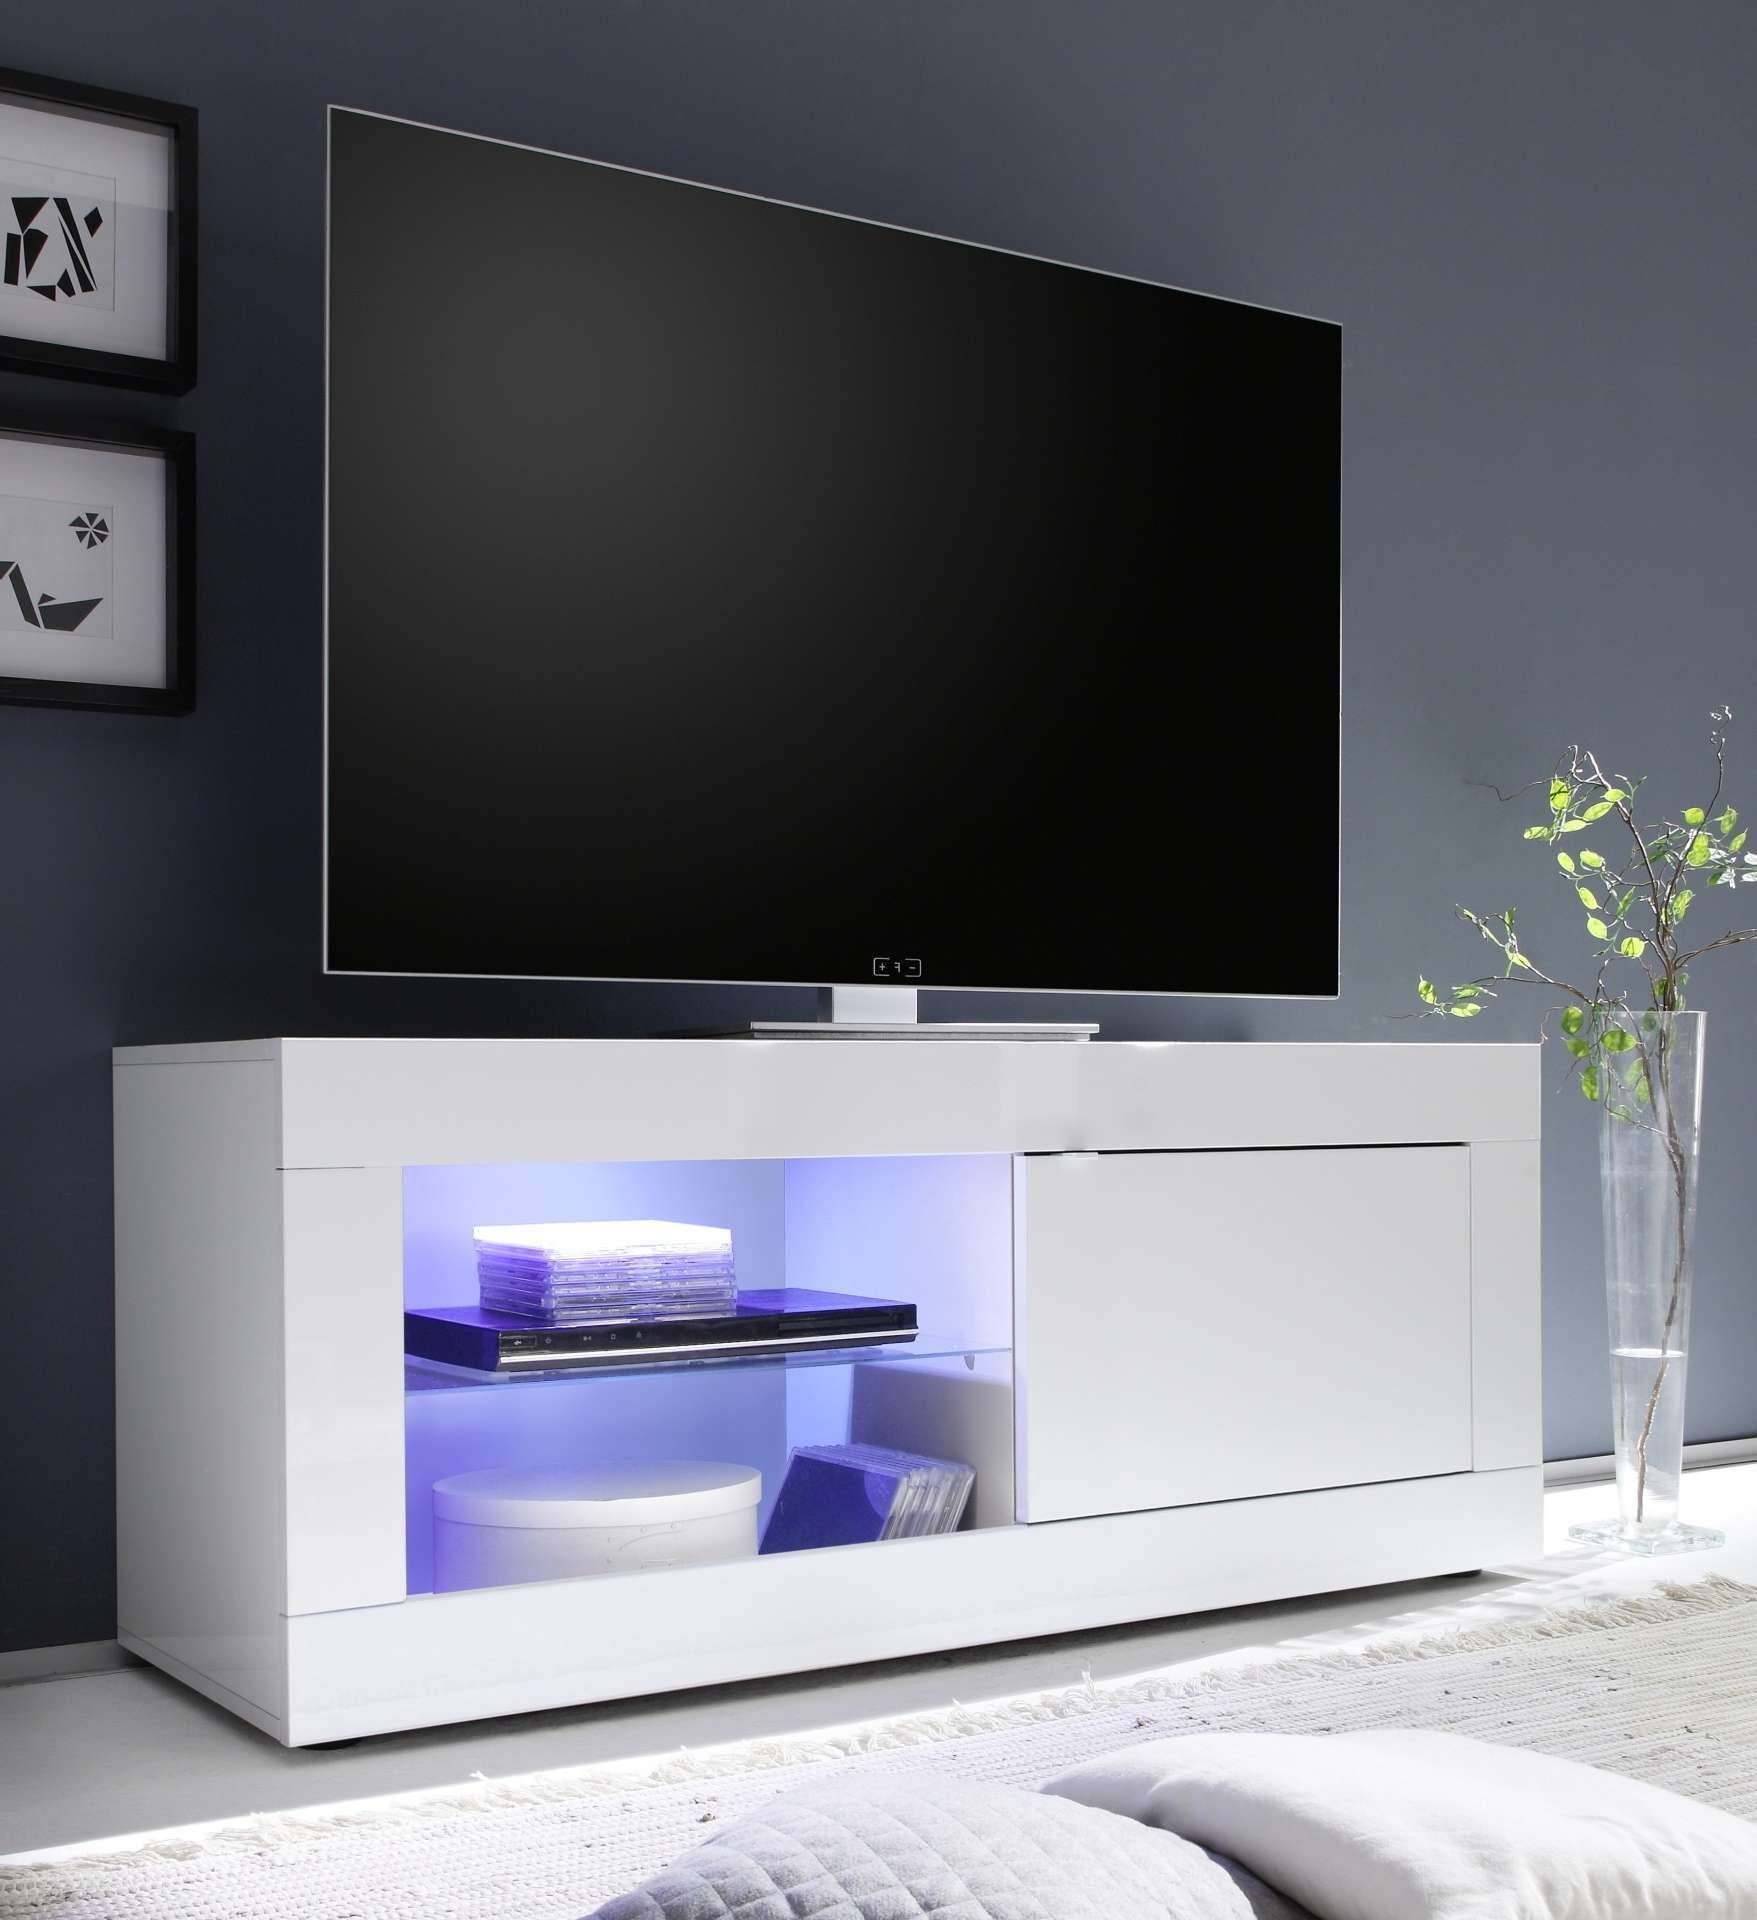 Avanti Ii Gloss Tv Stand With Rgb Lights – Tv Stands – Sena Home For Modern White Gloss Tv Stands (View 10 of 15)